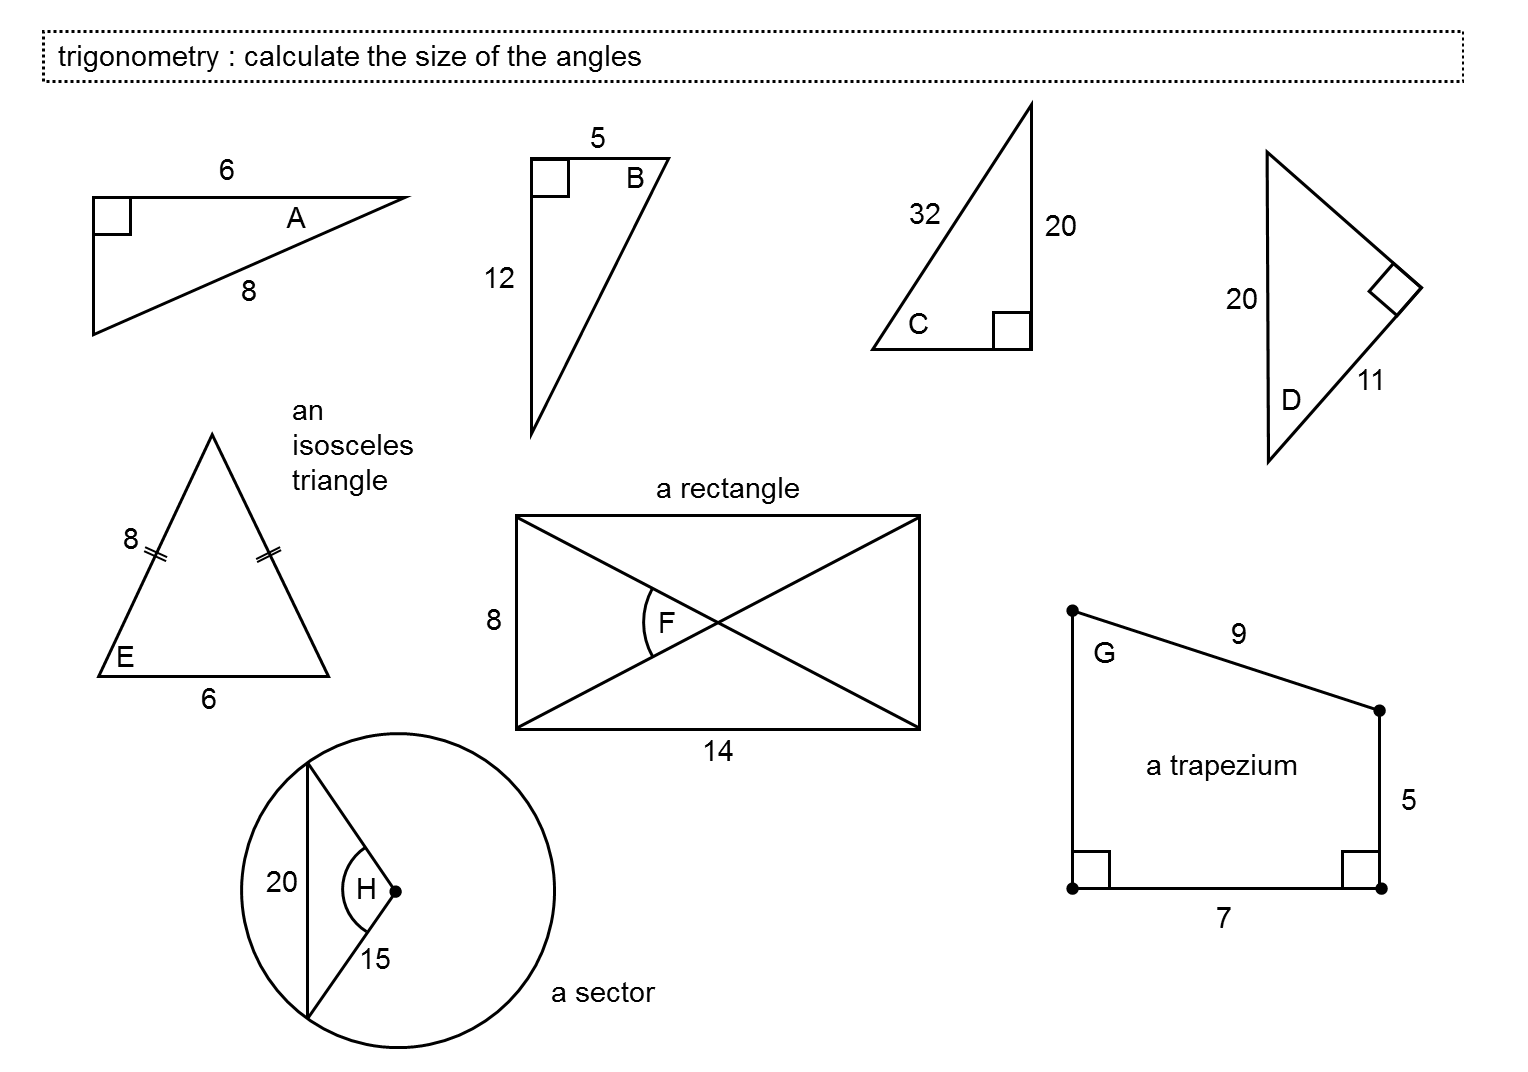 Printables Trigonometry Worksheet trigonometry in right angled triangles miss norledges storeroom calculate angle size don steward